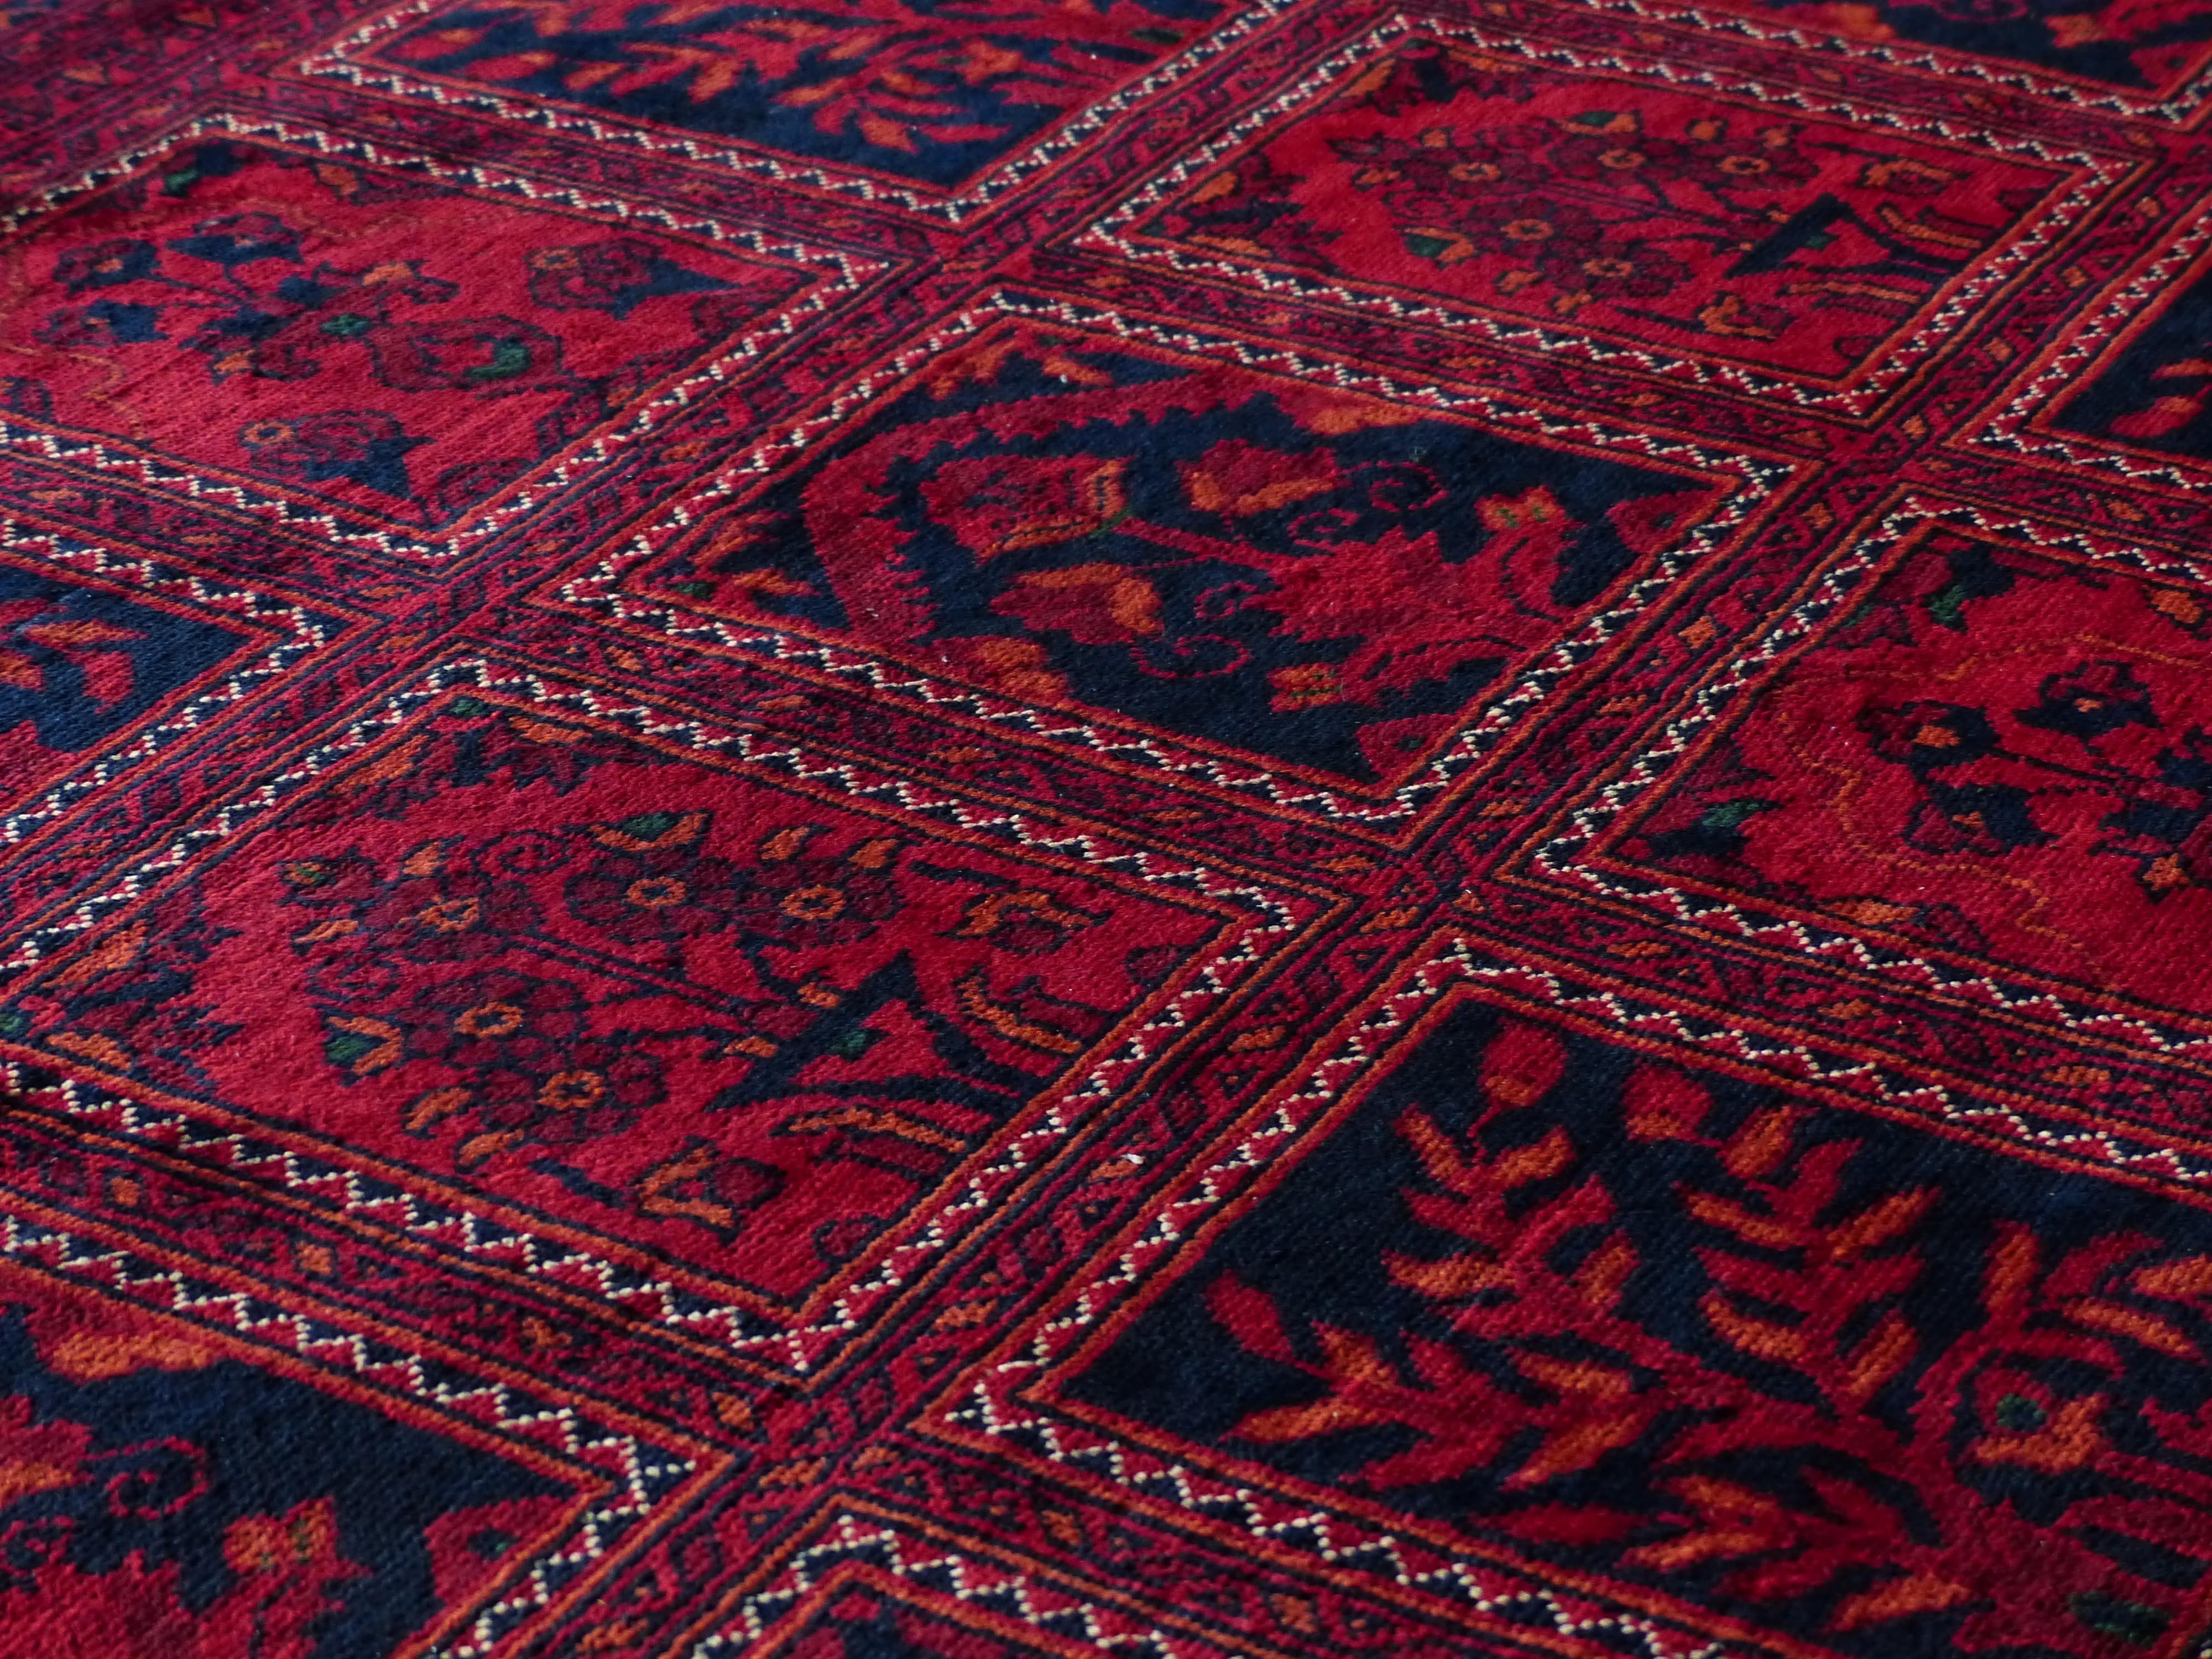 carpet_red_tyinkkkg-min.jpg